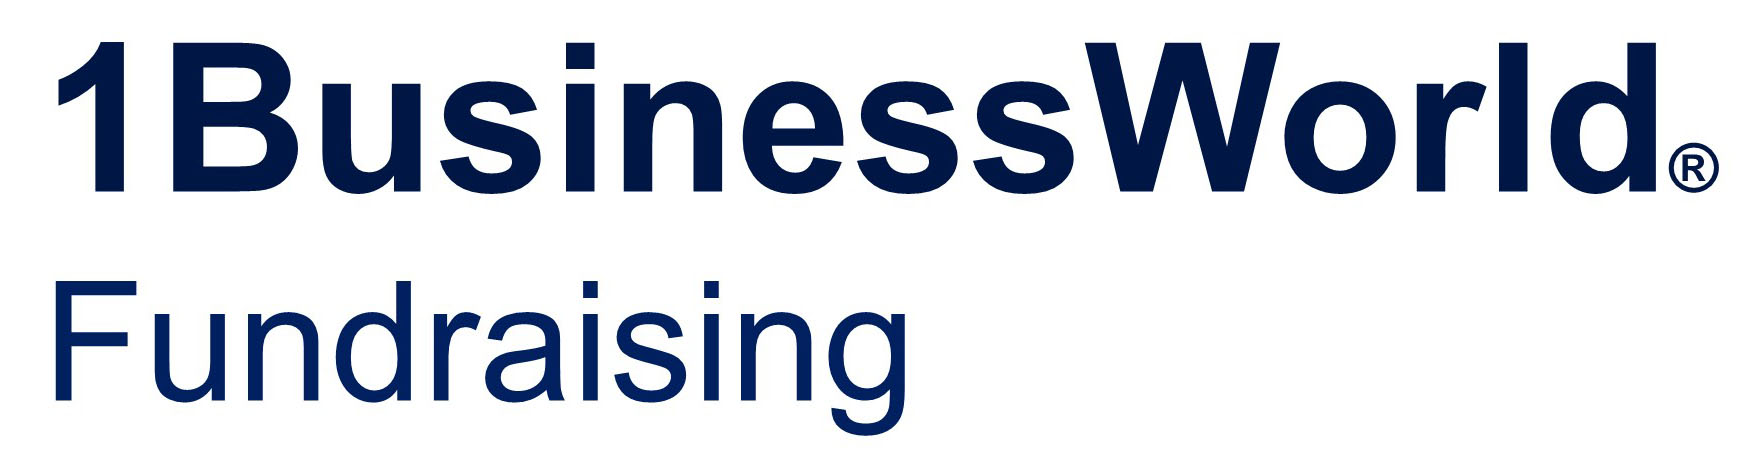 1BusinessWorld Fundraising